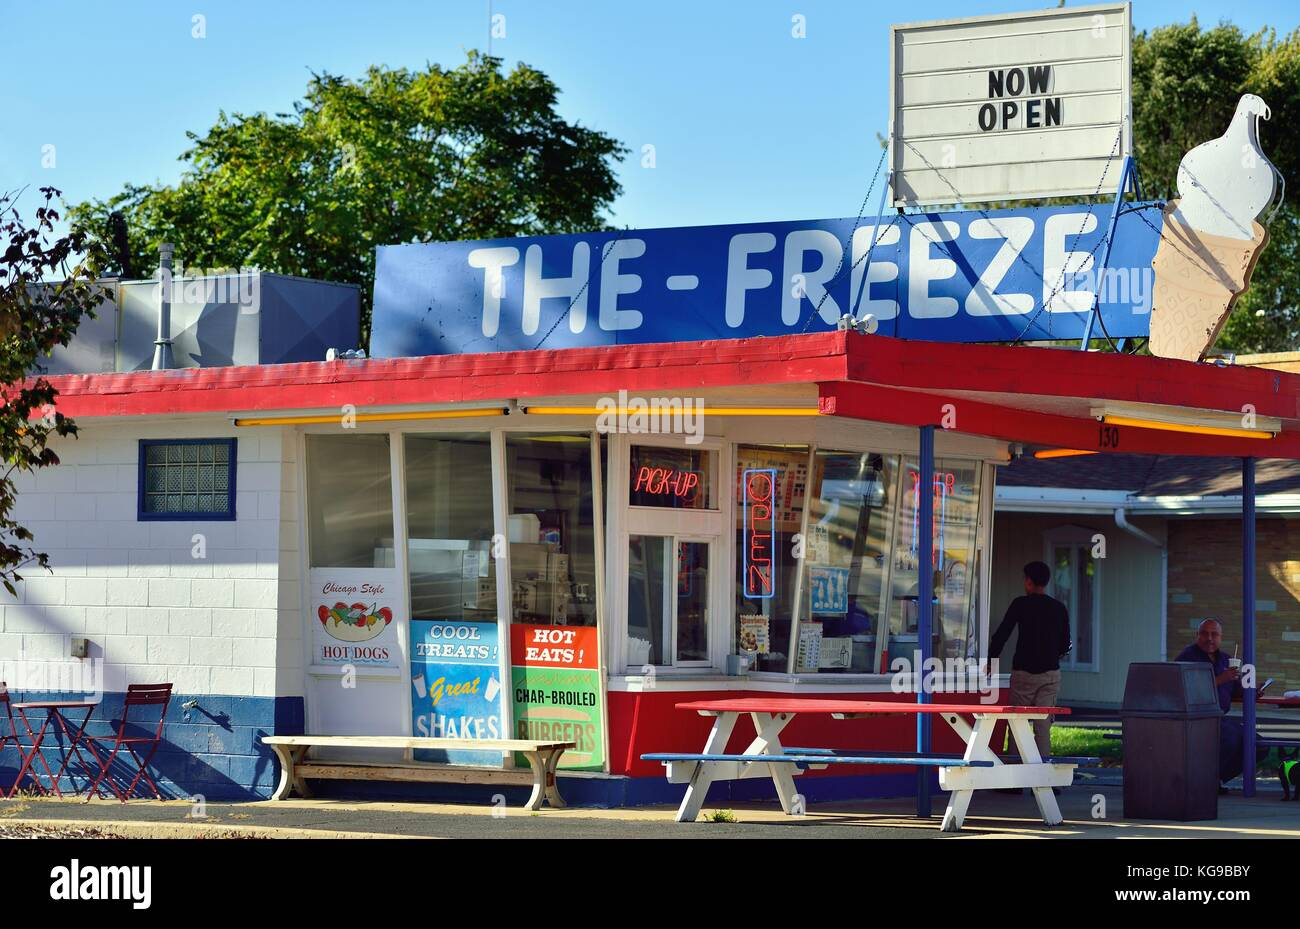 Due to the proliferation of franchise fast food restaurants, the number of soft serve ice cream outlets has dwindled. Stock Photo